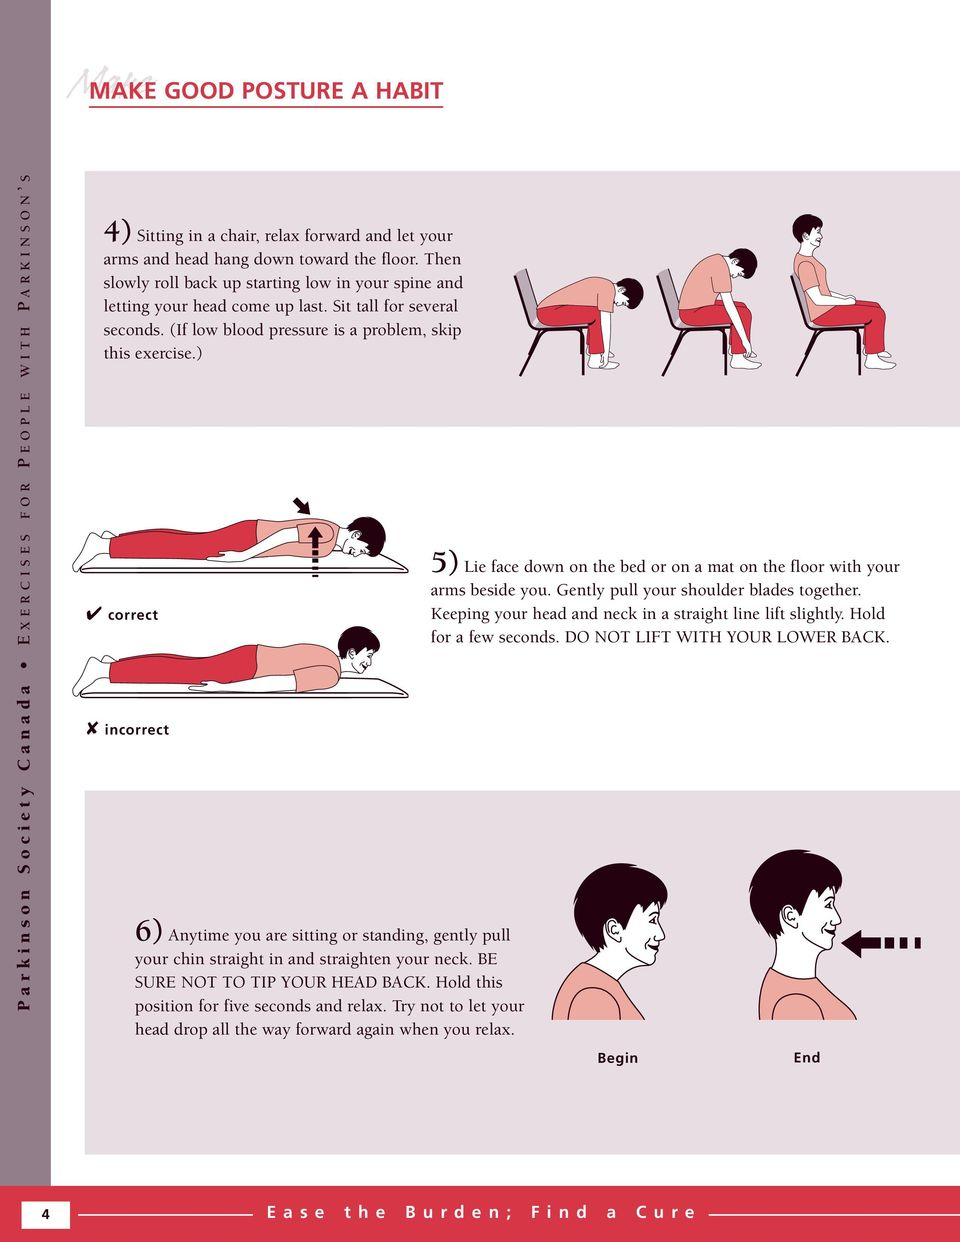 ) correct incorrect 6) Anytime you are sitting or standing, gently pull your chin straight in and straighten your neck. BE SURE NOT TO TIP YOUR HEAD BACK.